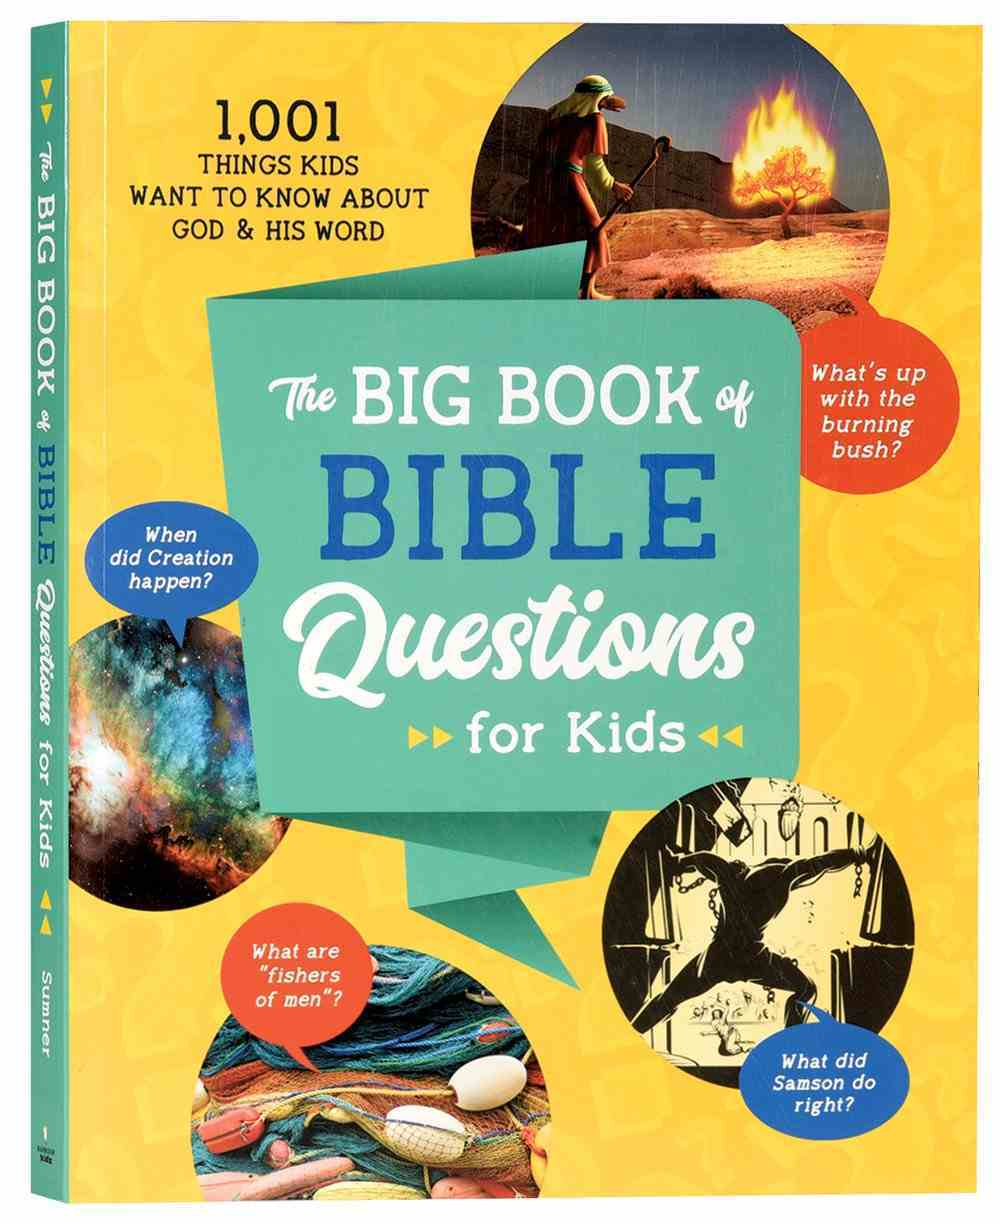 The Big Book of Bible Questions For Kids: 1,001 Things Kids Want to Know About God and His Word Paperback